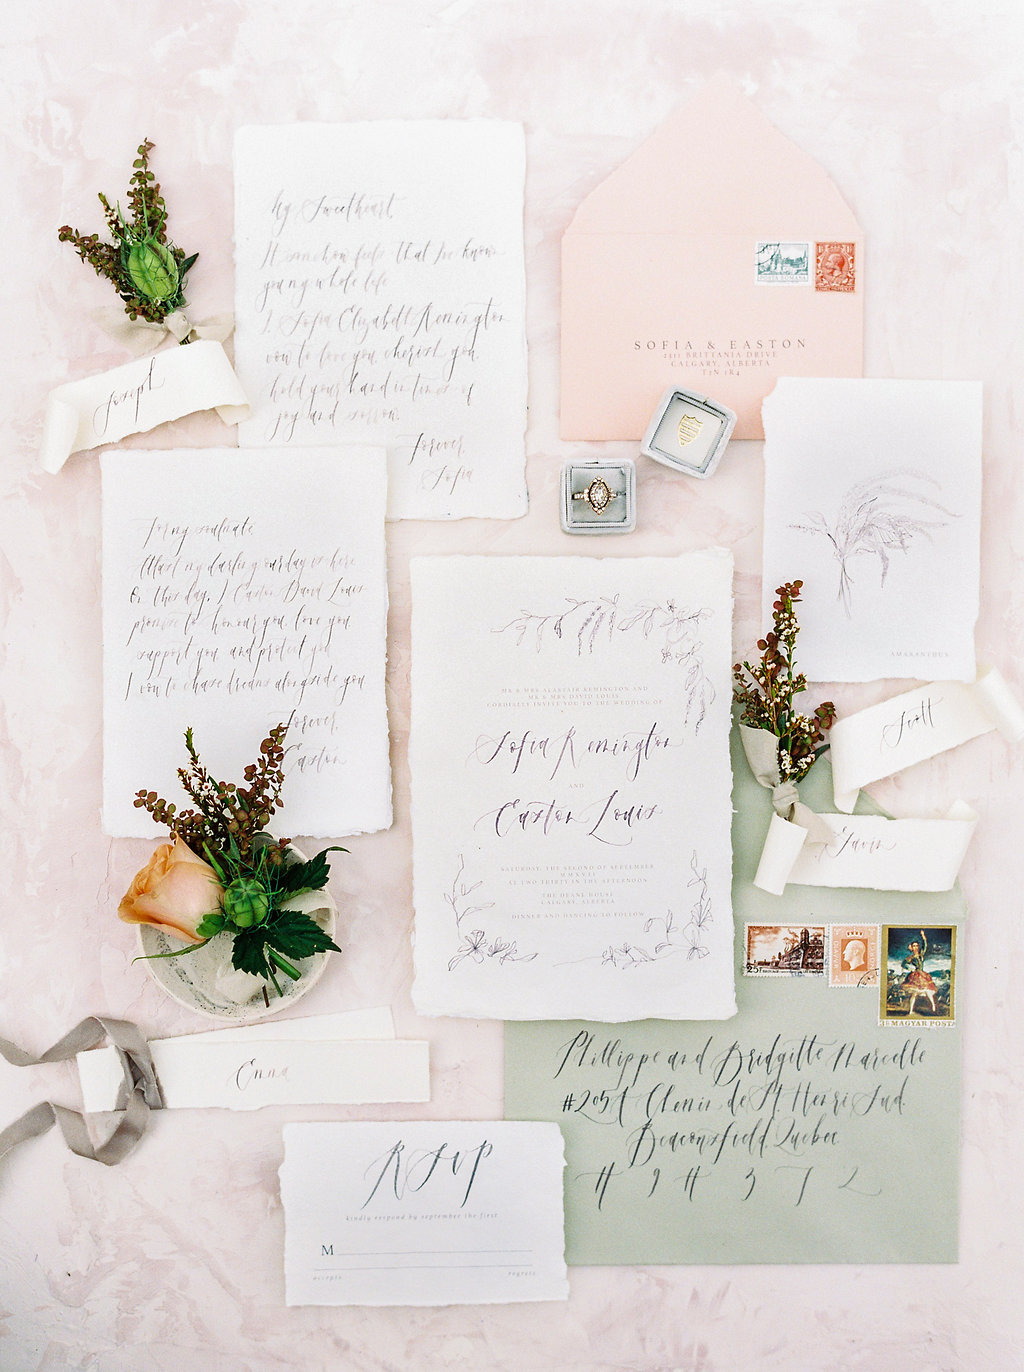 Beautiful Blooms and Sweet Tarts - FEATURED ON STYLE ME PRETTY / WINTER 2018Design + Styling: Paperdoll + Photography: Justine Milton + Stationery: Art + Alexander + Florals: Fern & Frond + Dress: Tatyana Merenyuk via Pearl & Dot + Hair and Makeup: SimplyME Canmore + Venue: Deane House